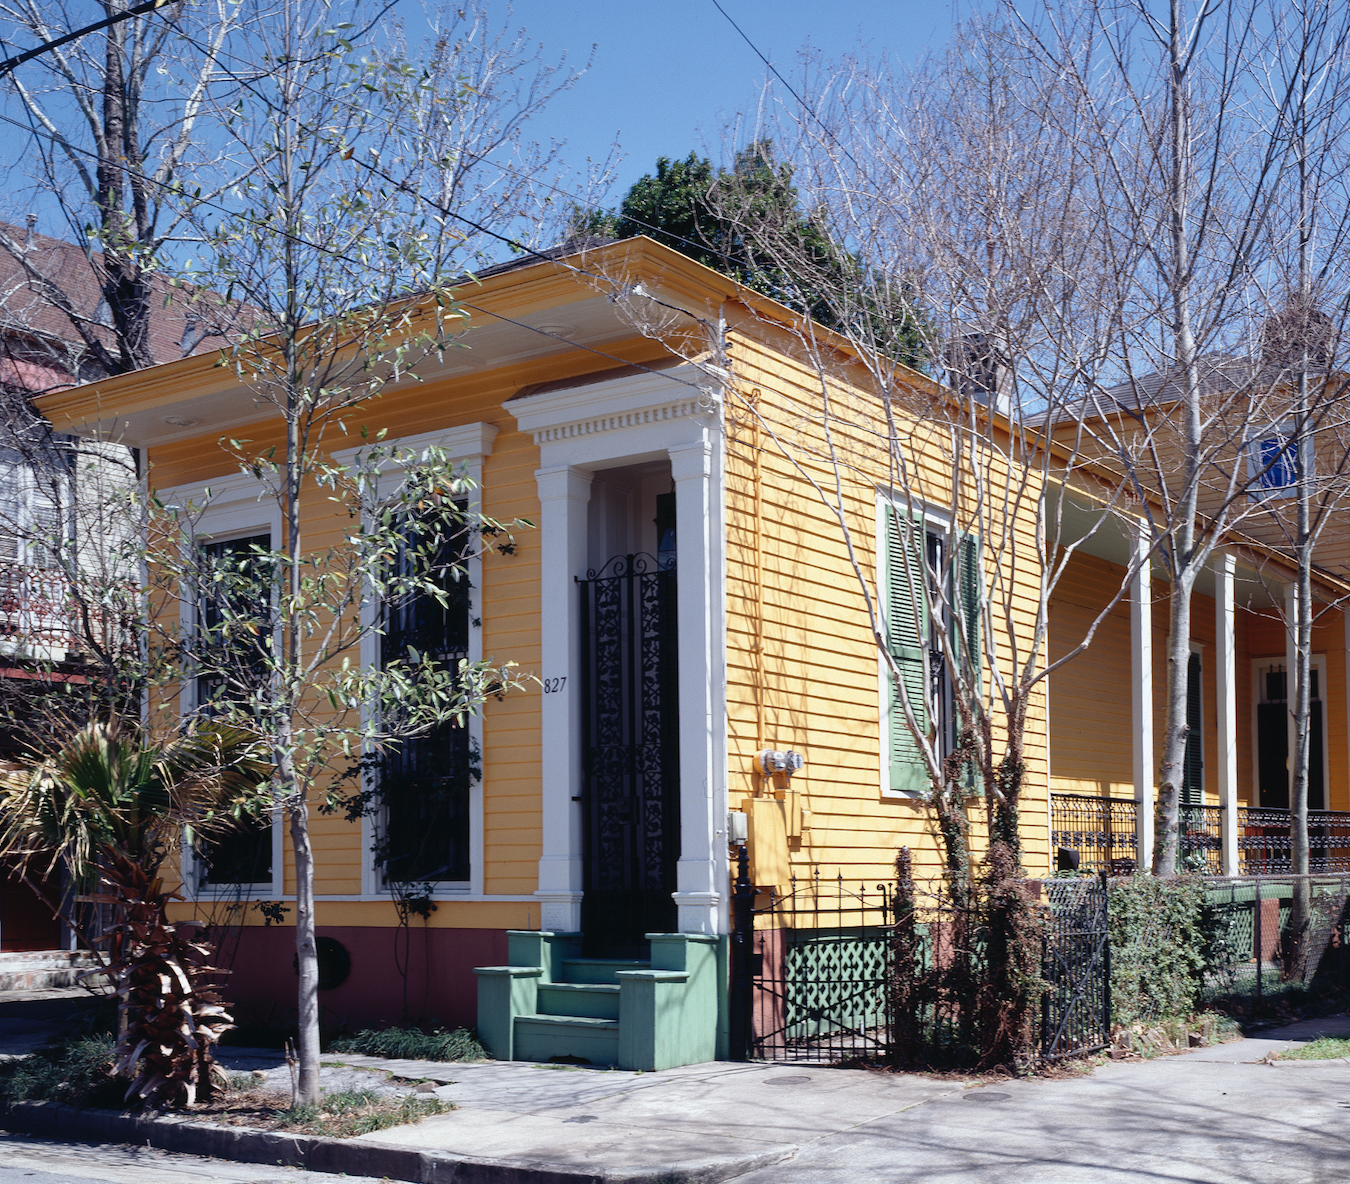 What Is a Shotgun House?